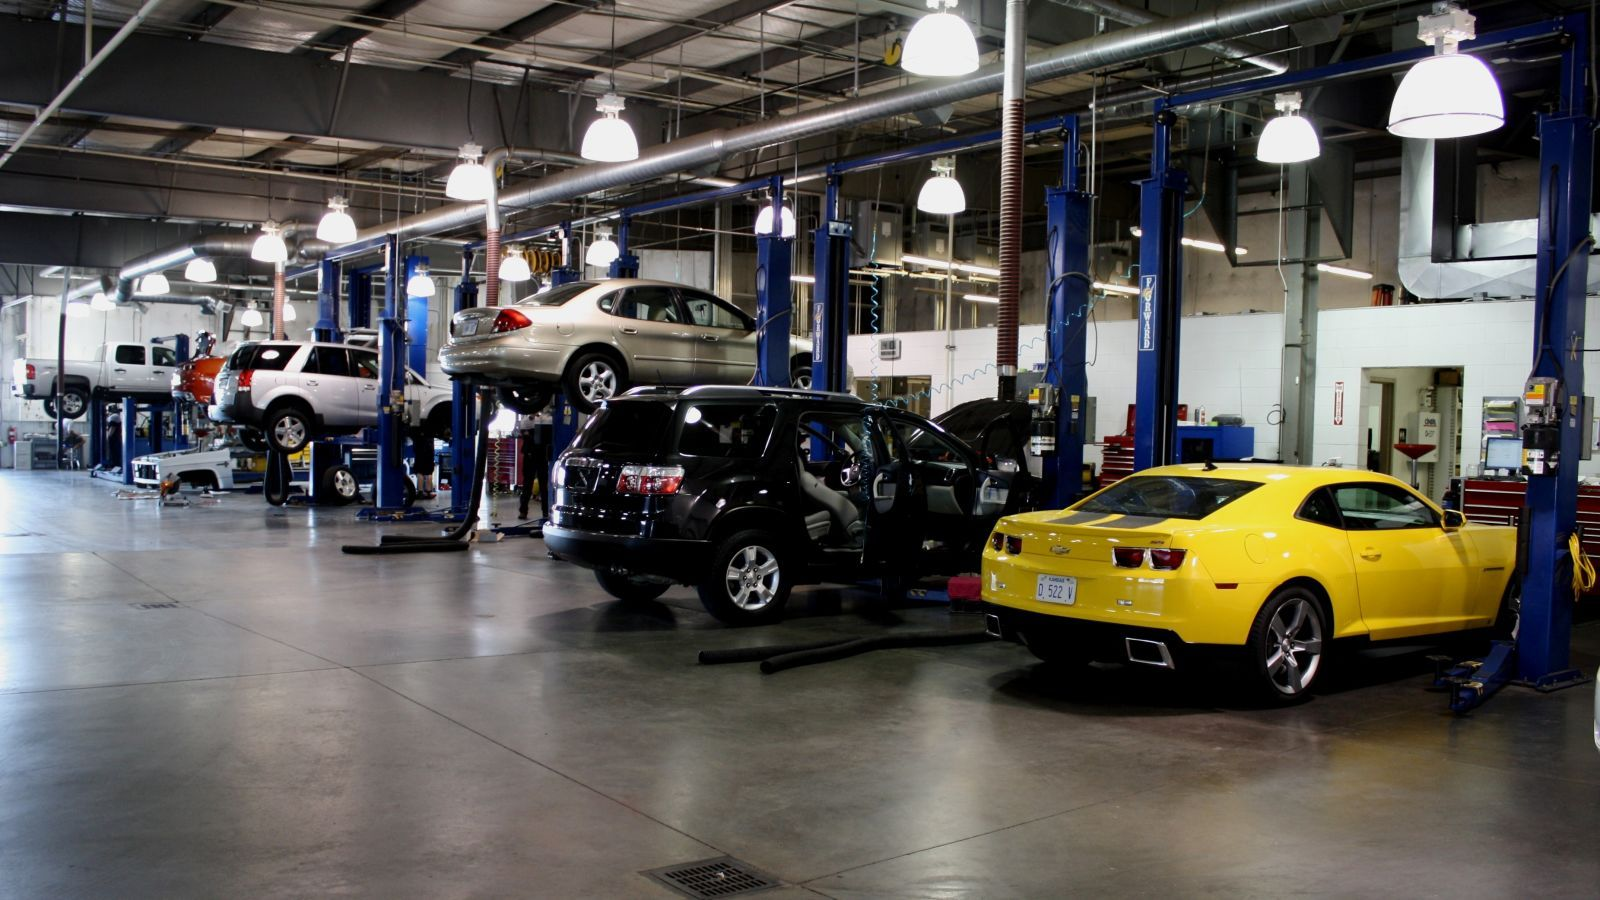 Will I Get Bad Service At My Local Dealer Because I Bought My Car